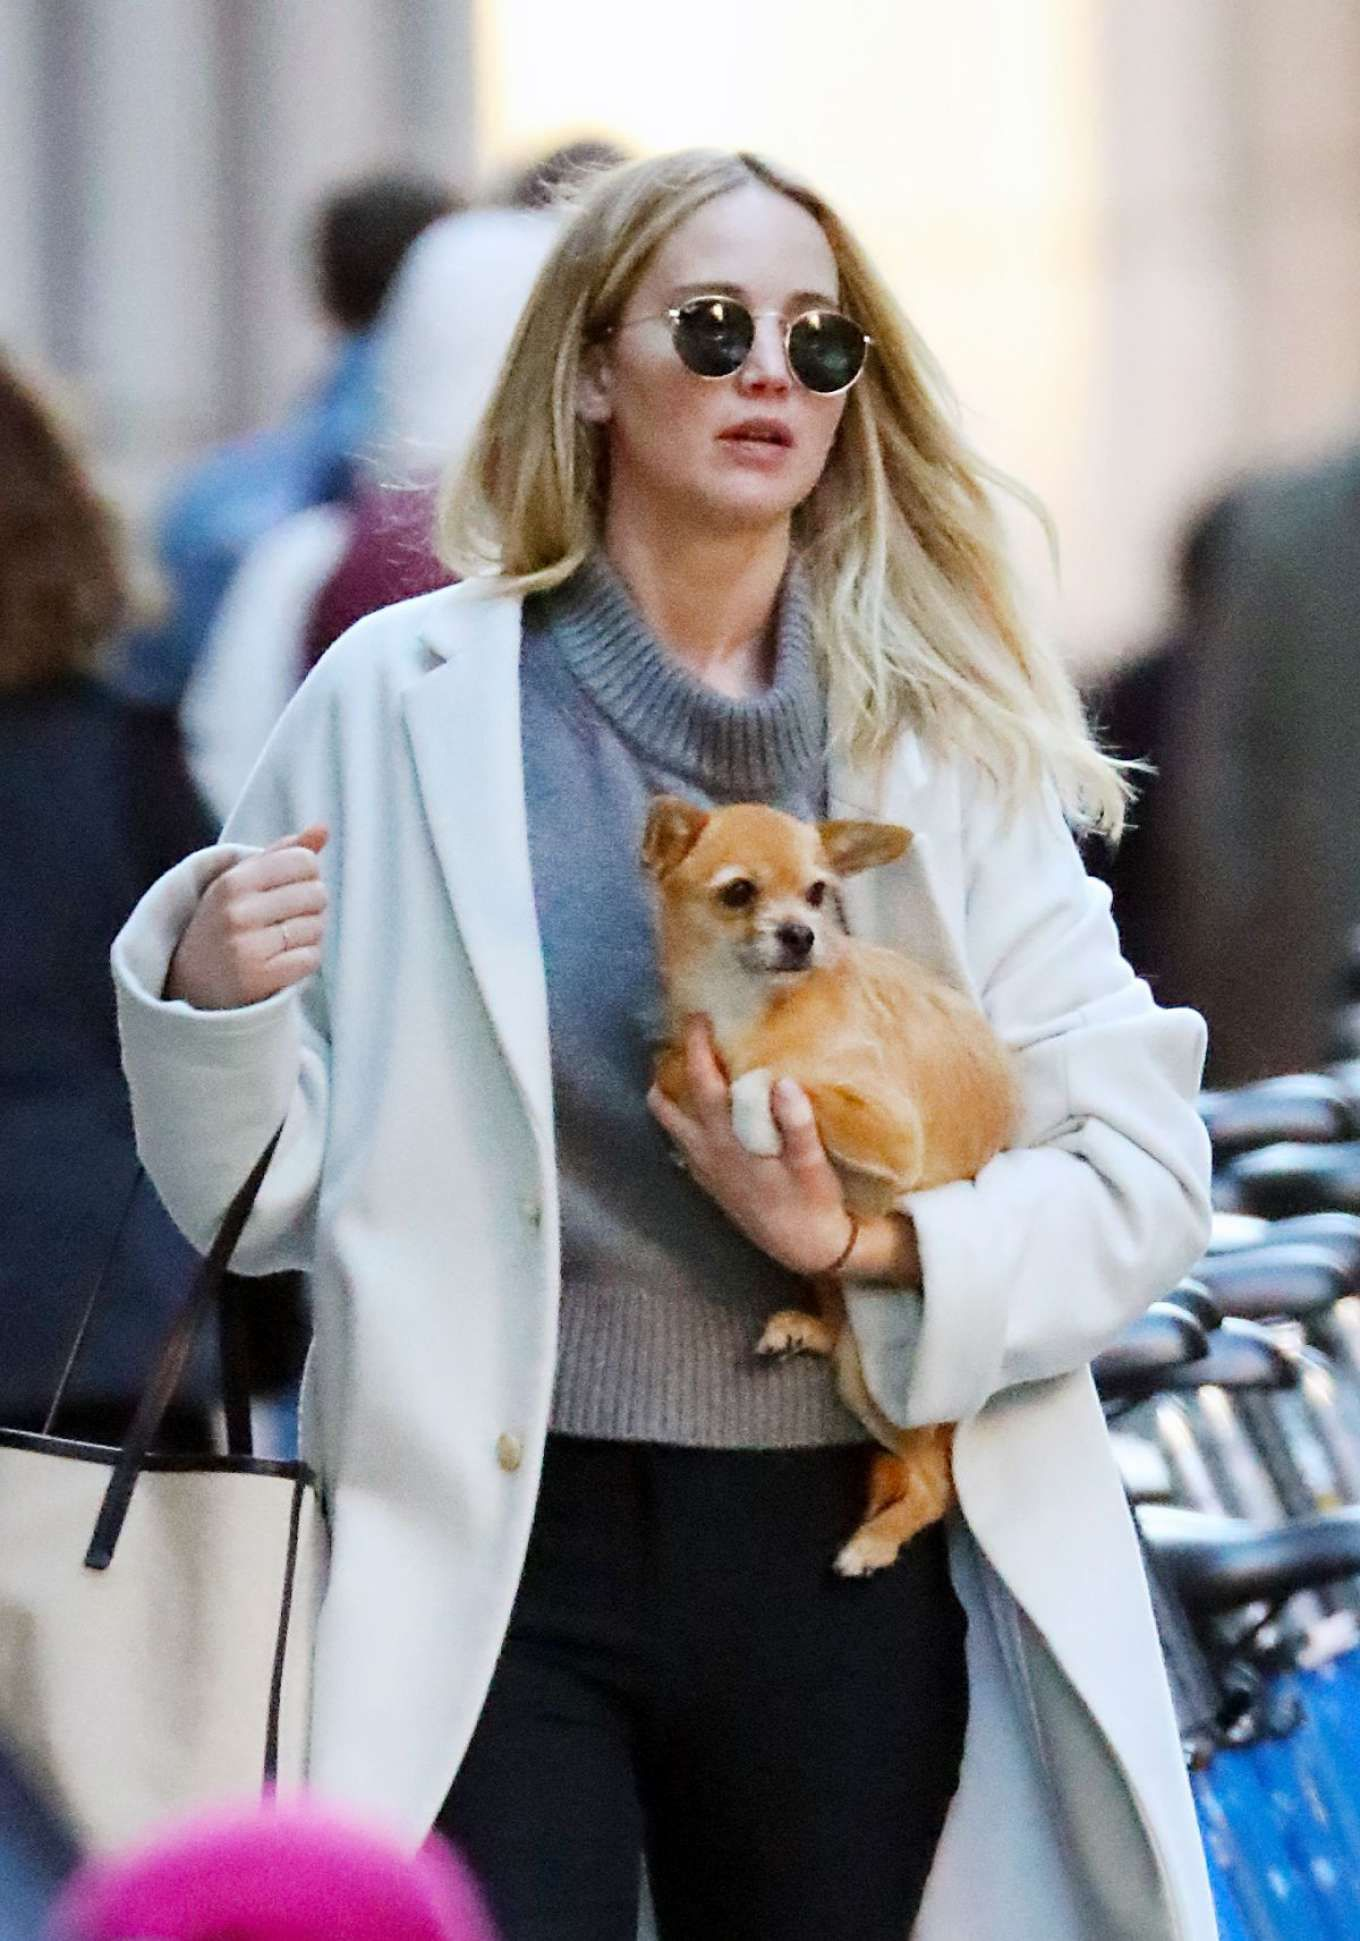 Jennifer with her dog